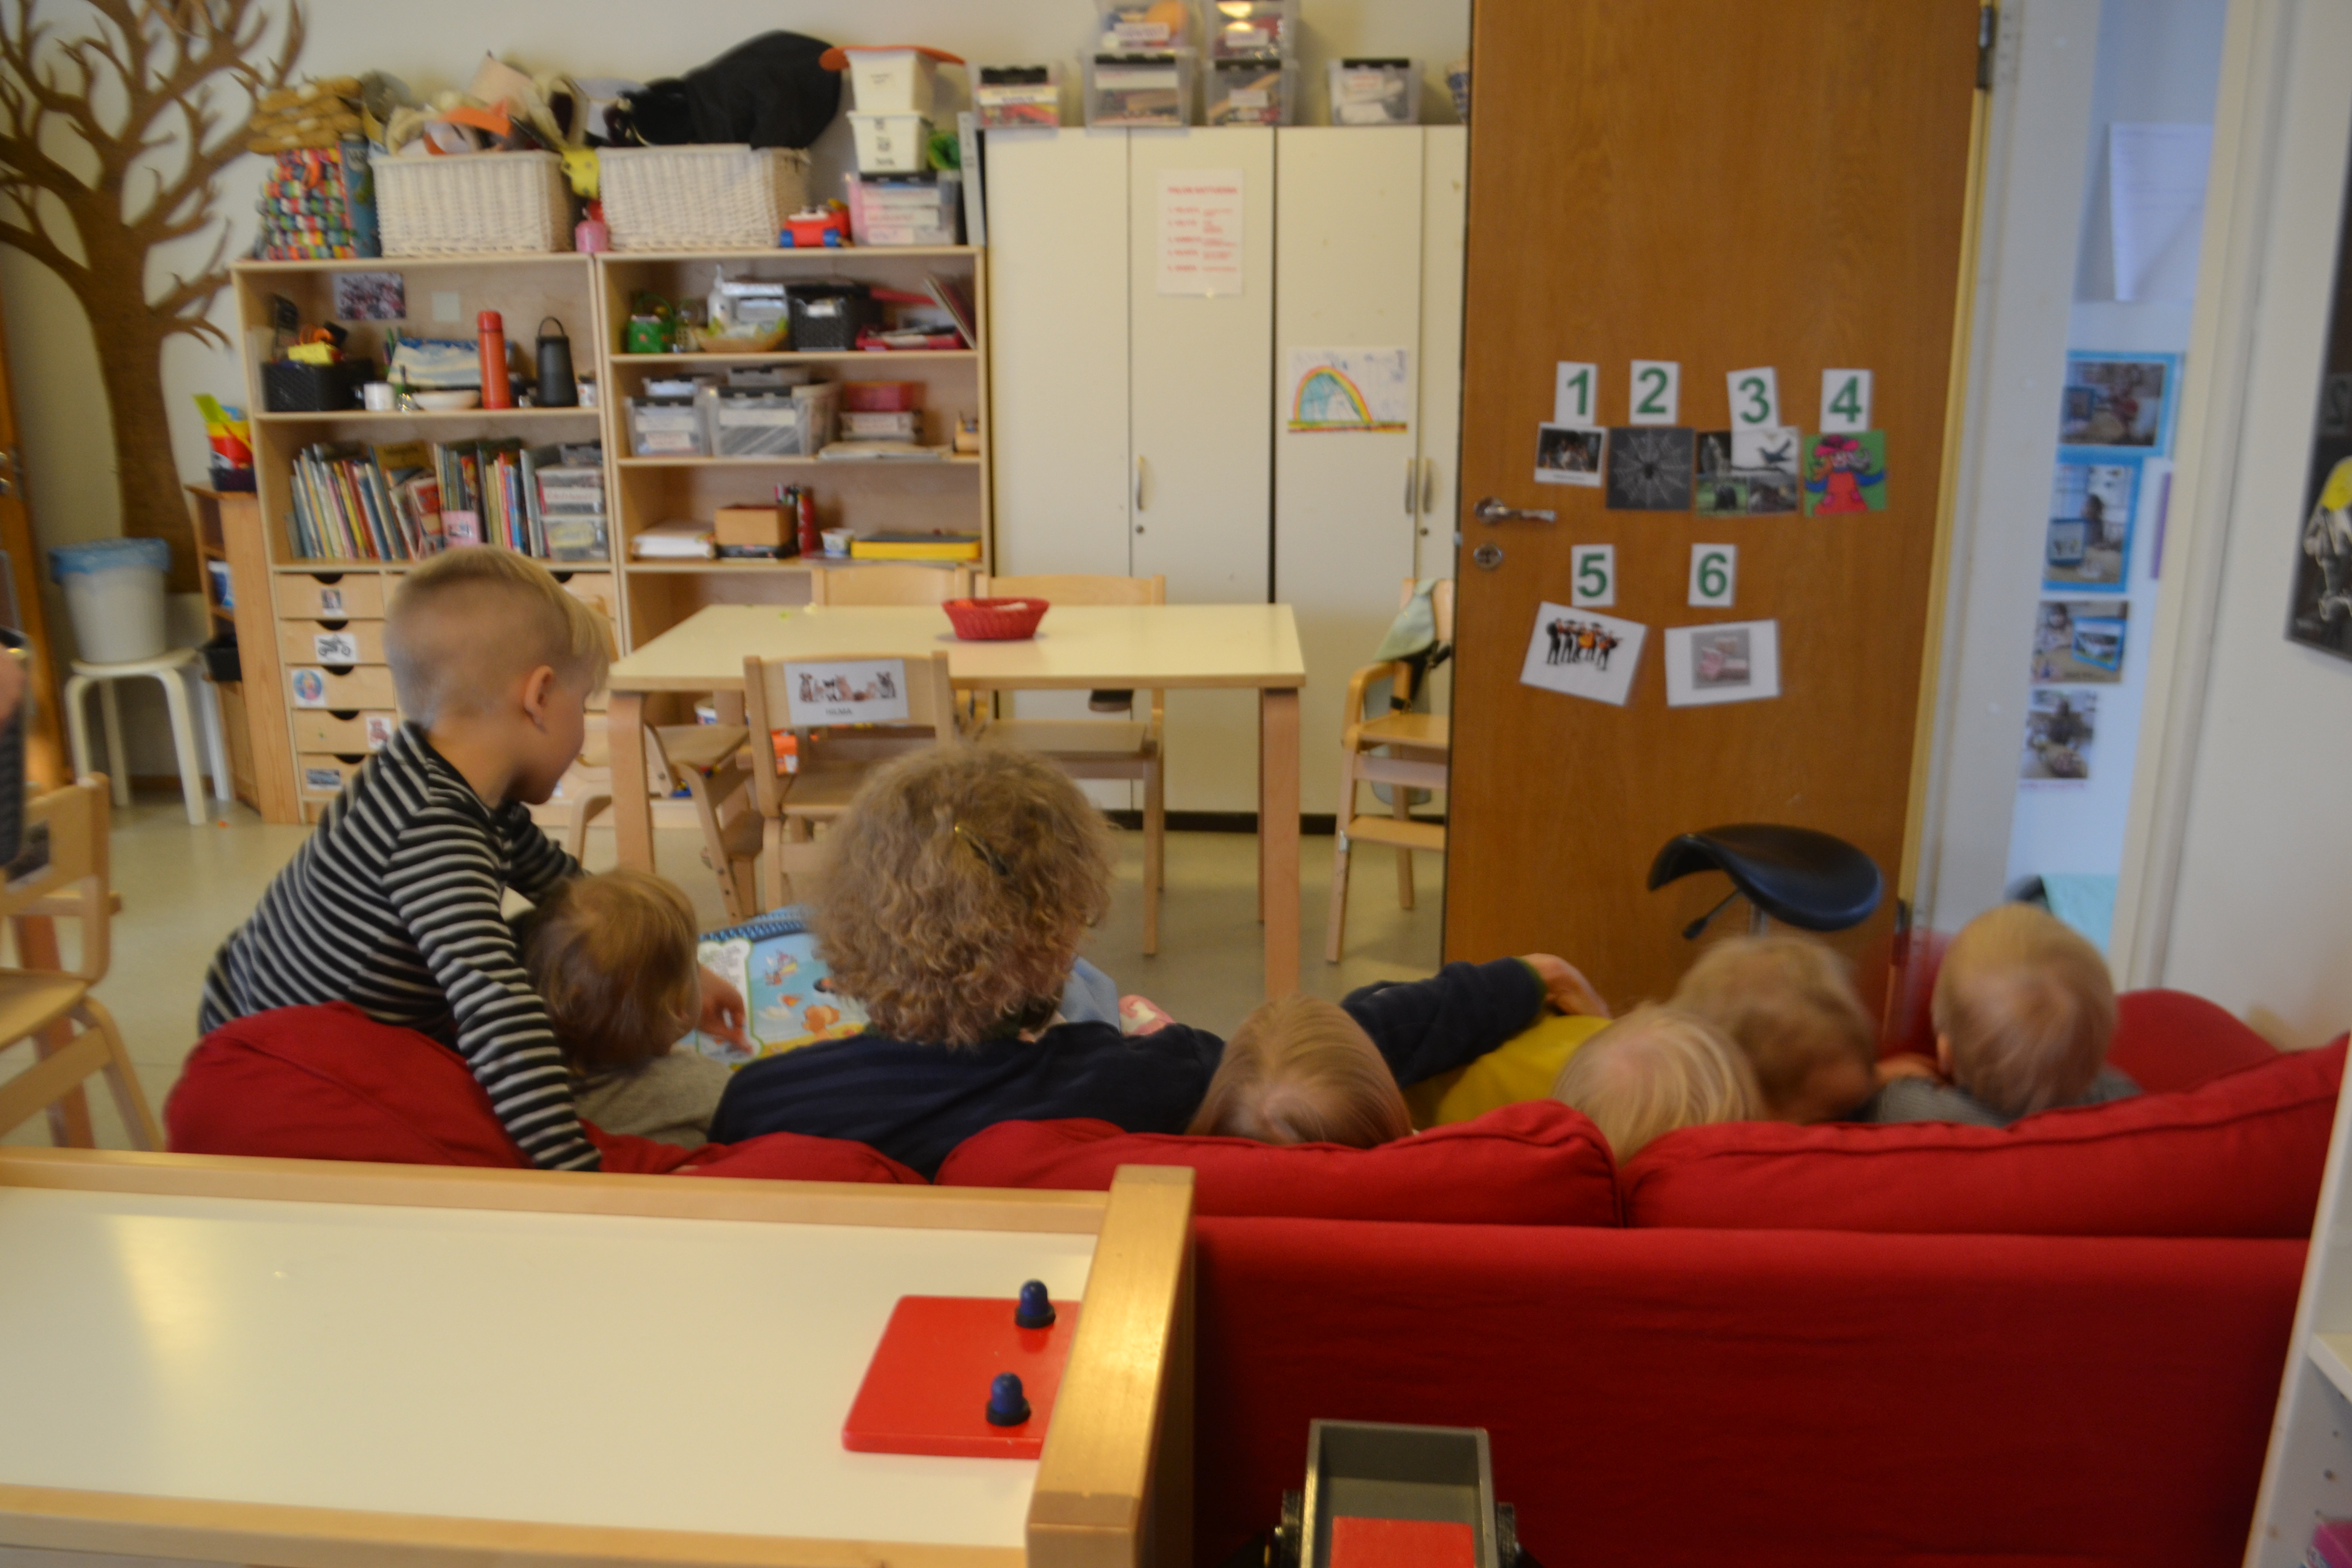 A view of Marjatta on the couch reading to a group of children from the back